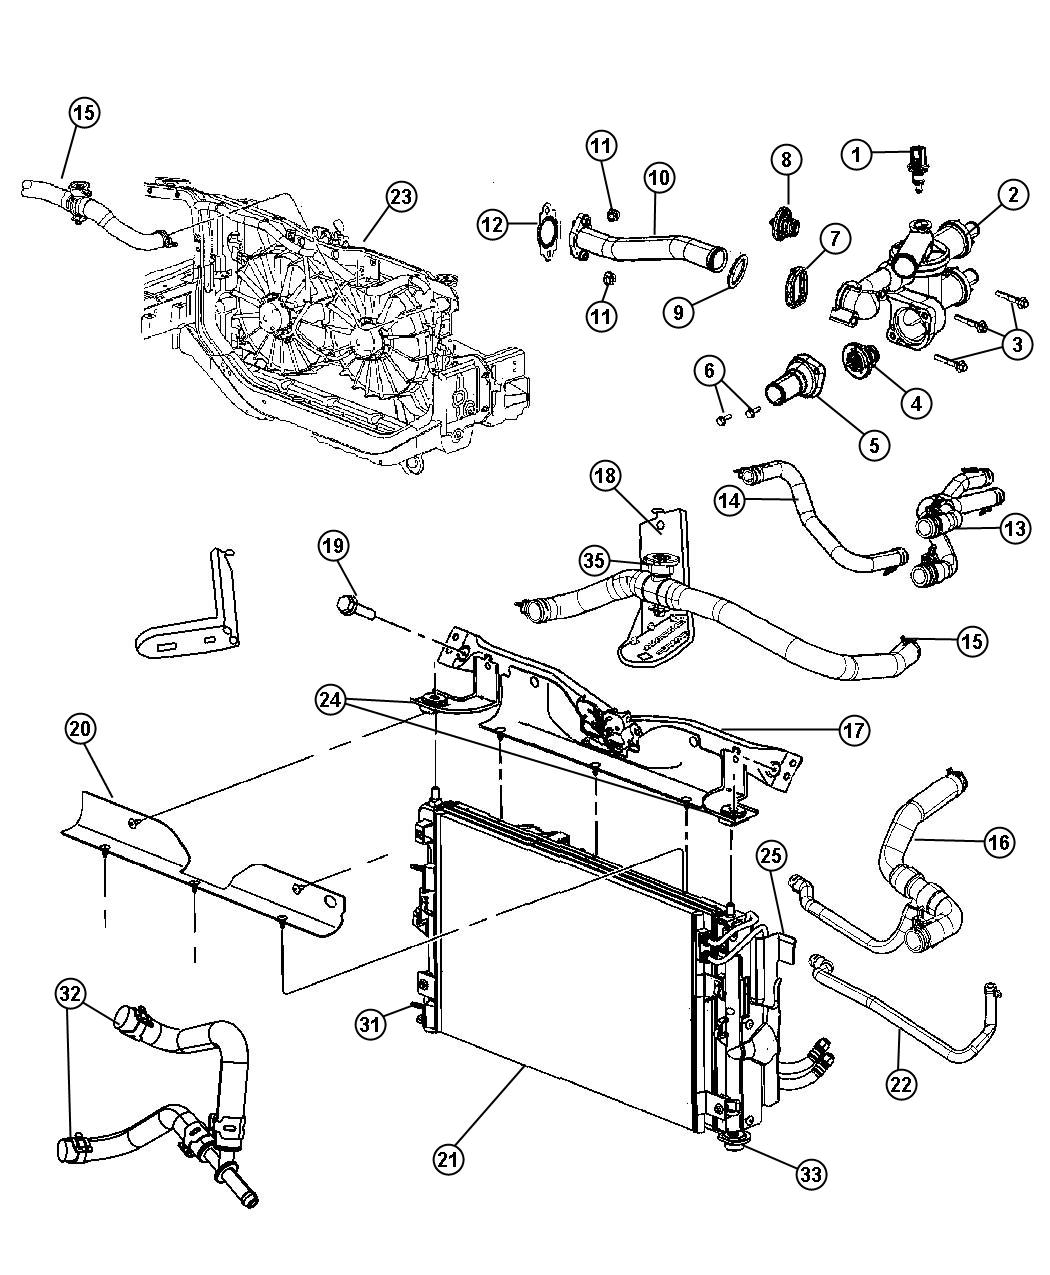 Jeep Patriot Condenser Air Conditioning Plumbing Transmission Daw